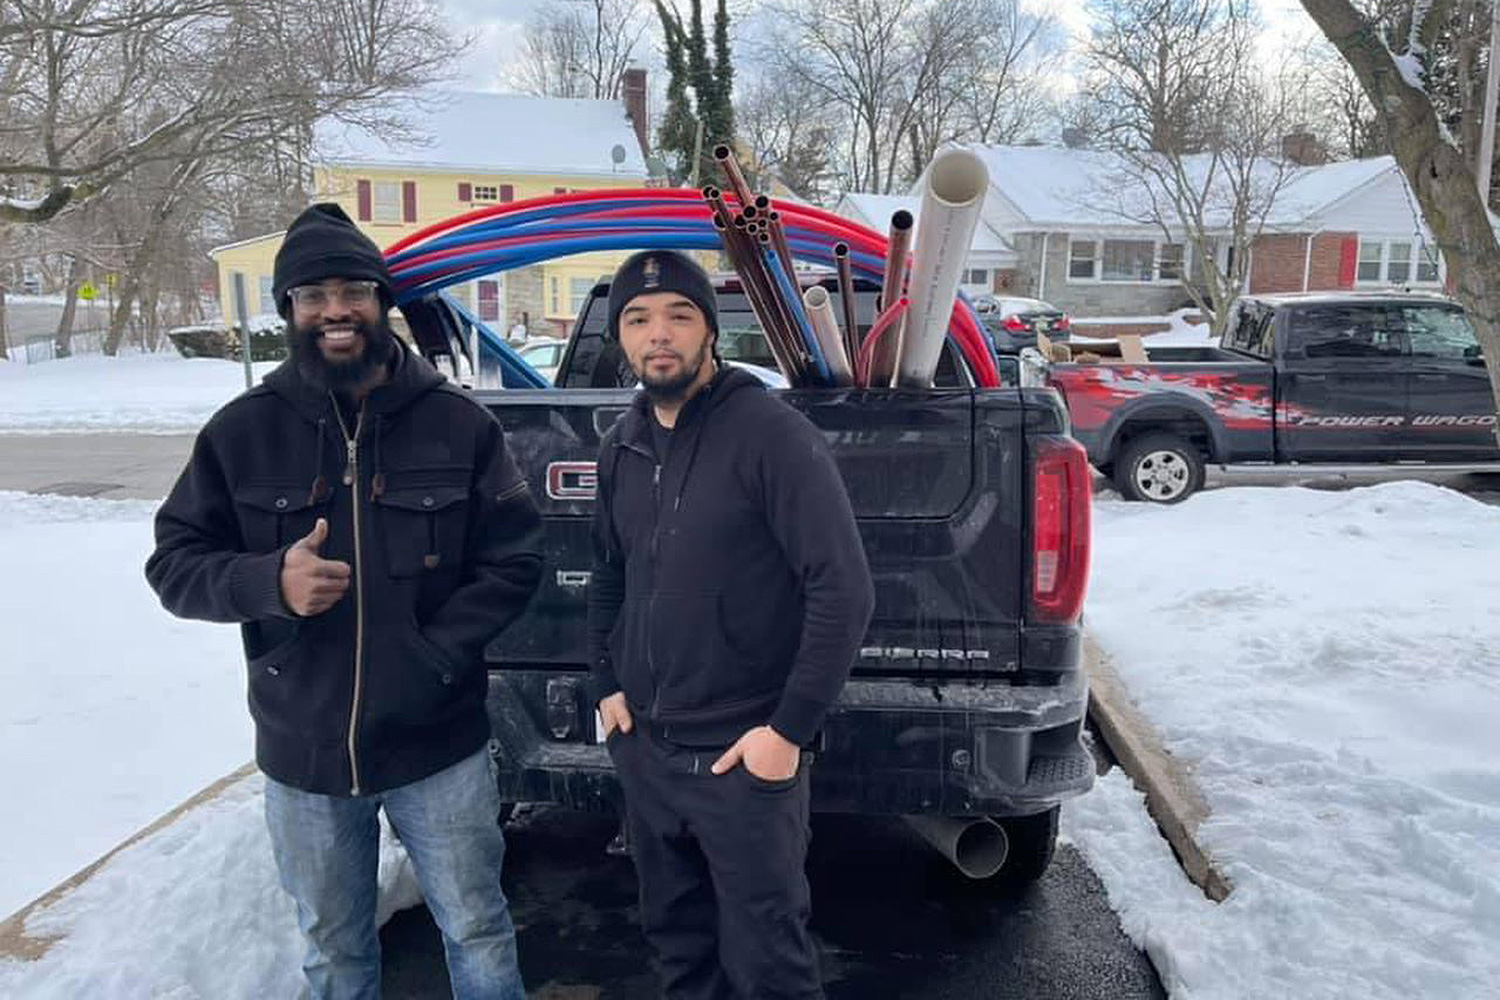 New Jersey Plumber Drives His Family to Texas to Help After Winter Storm